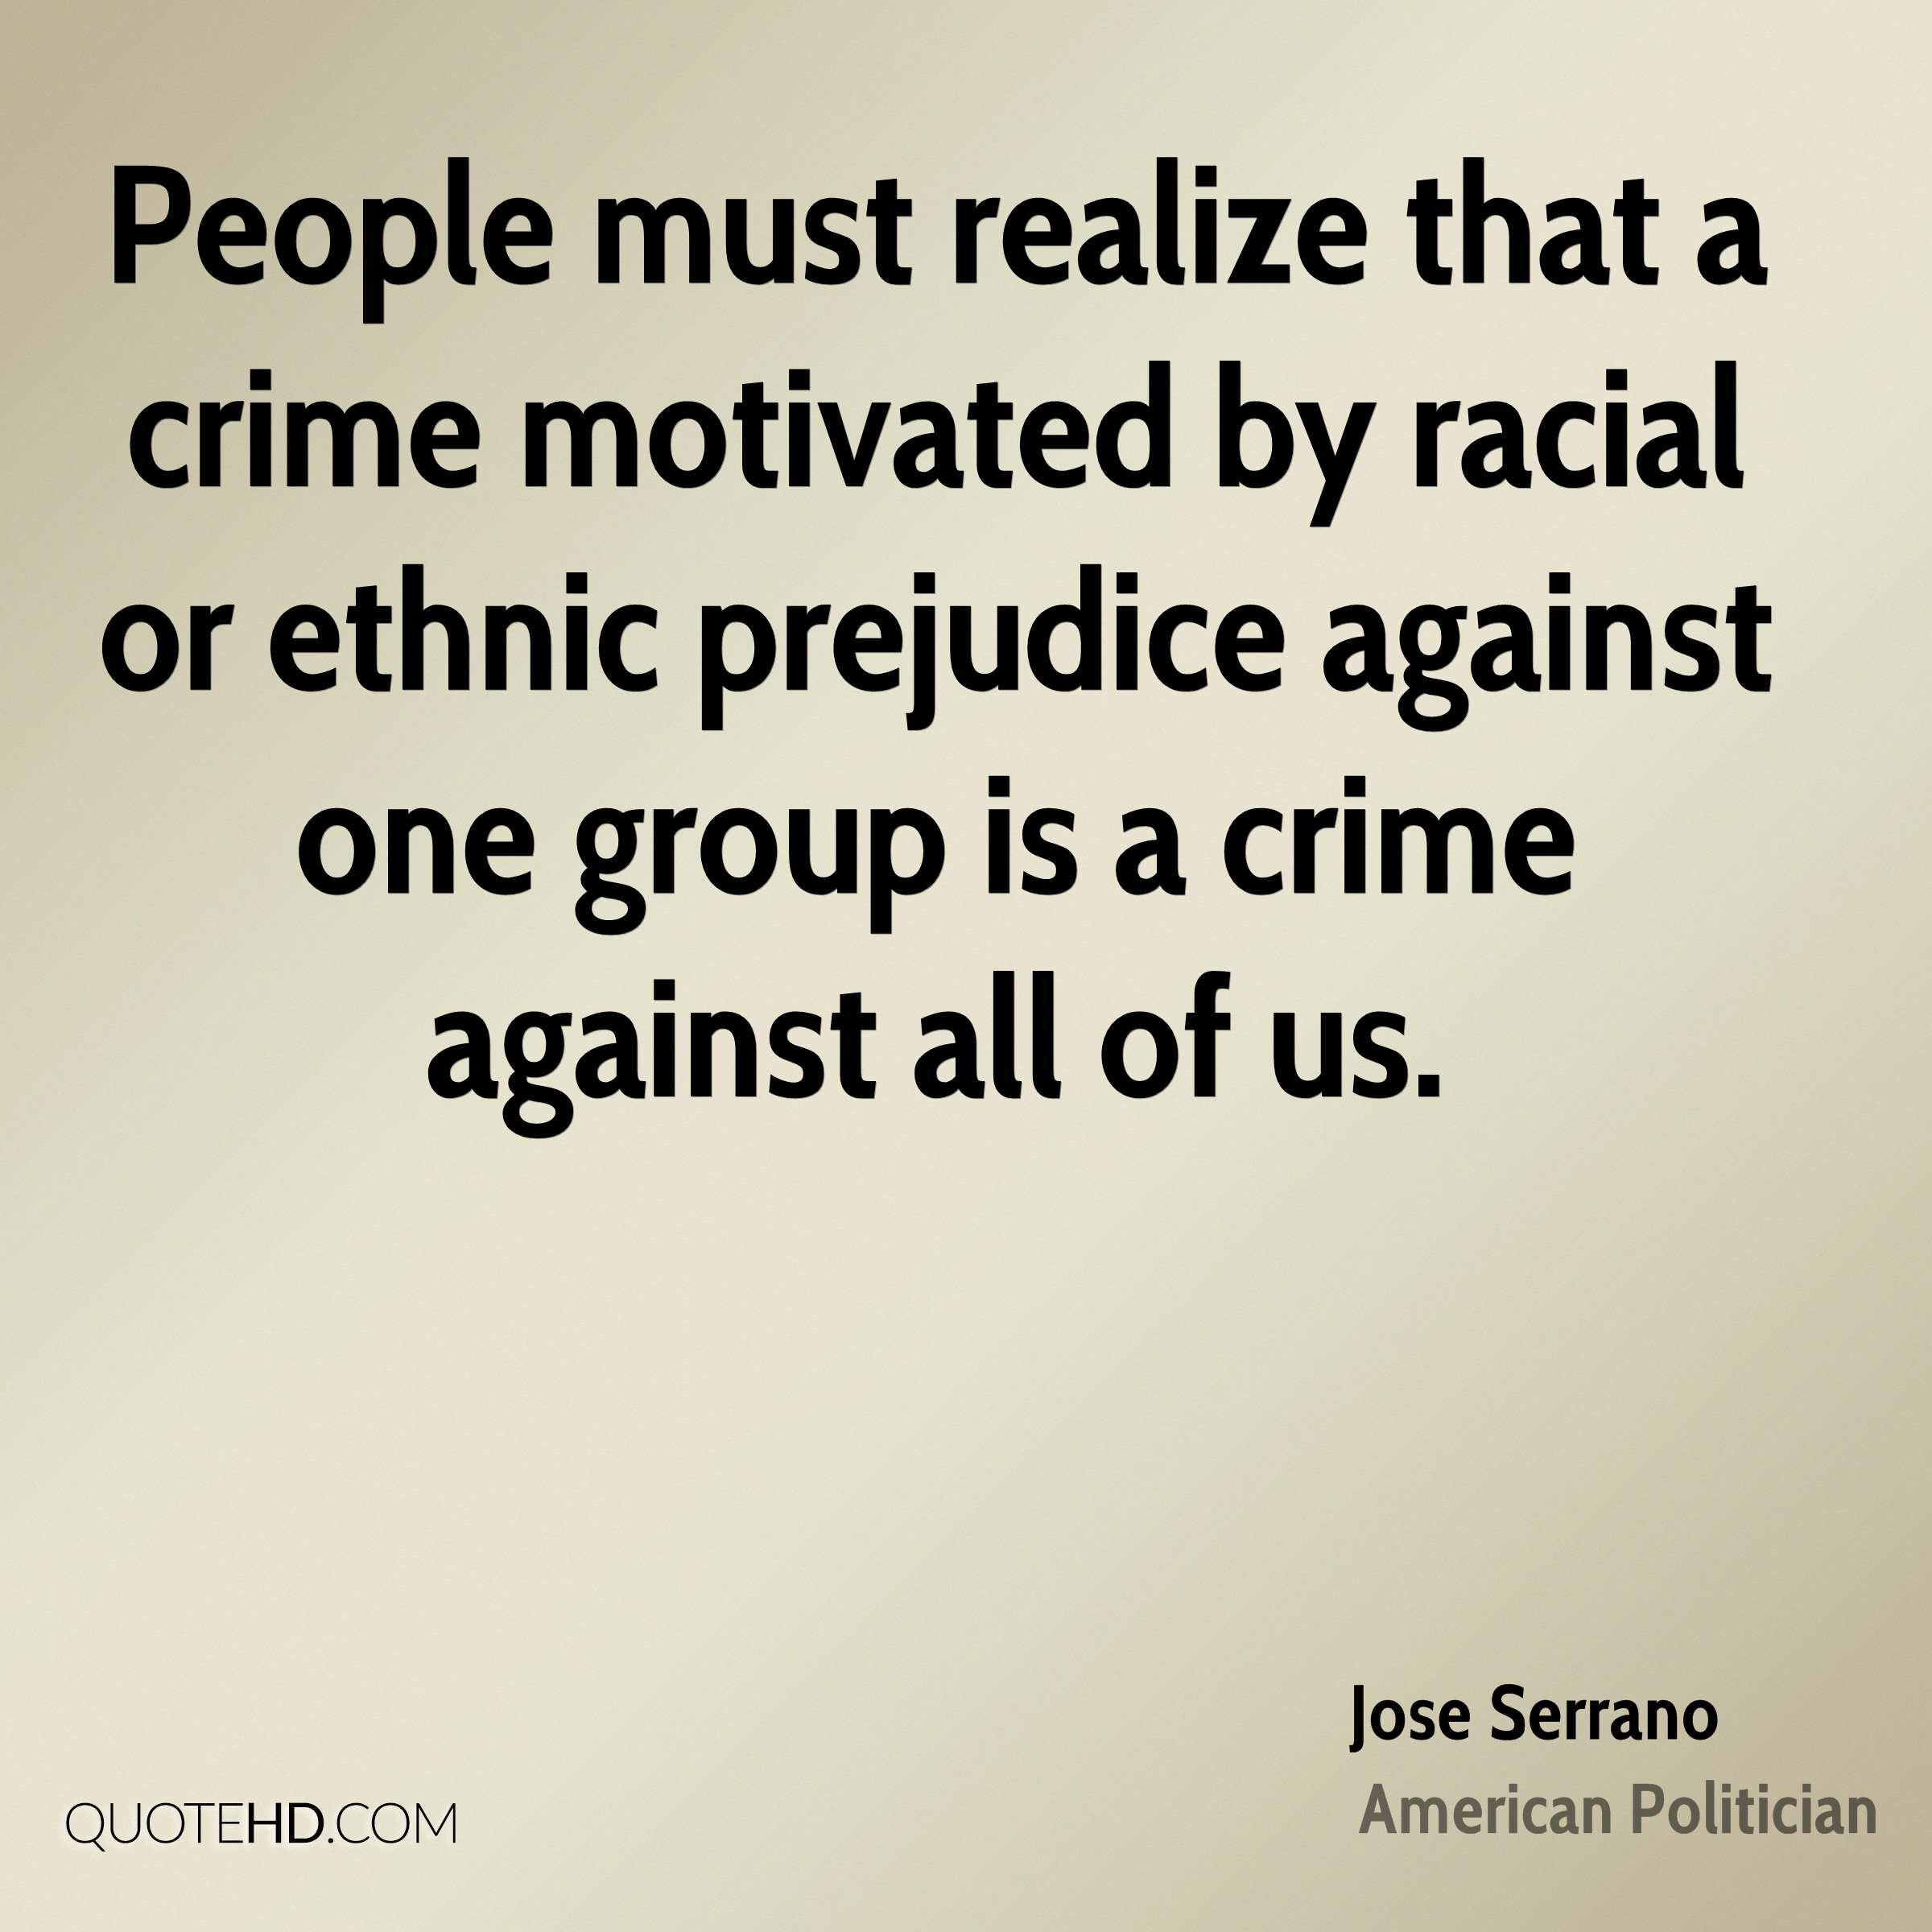 People must realize that a crime motivated by racial or ethnic prejudice against one group is a crime against all of us.